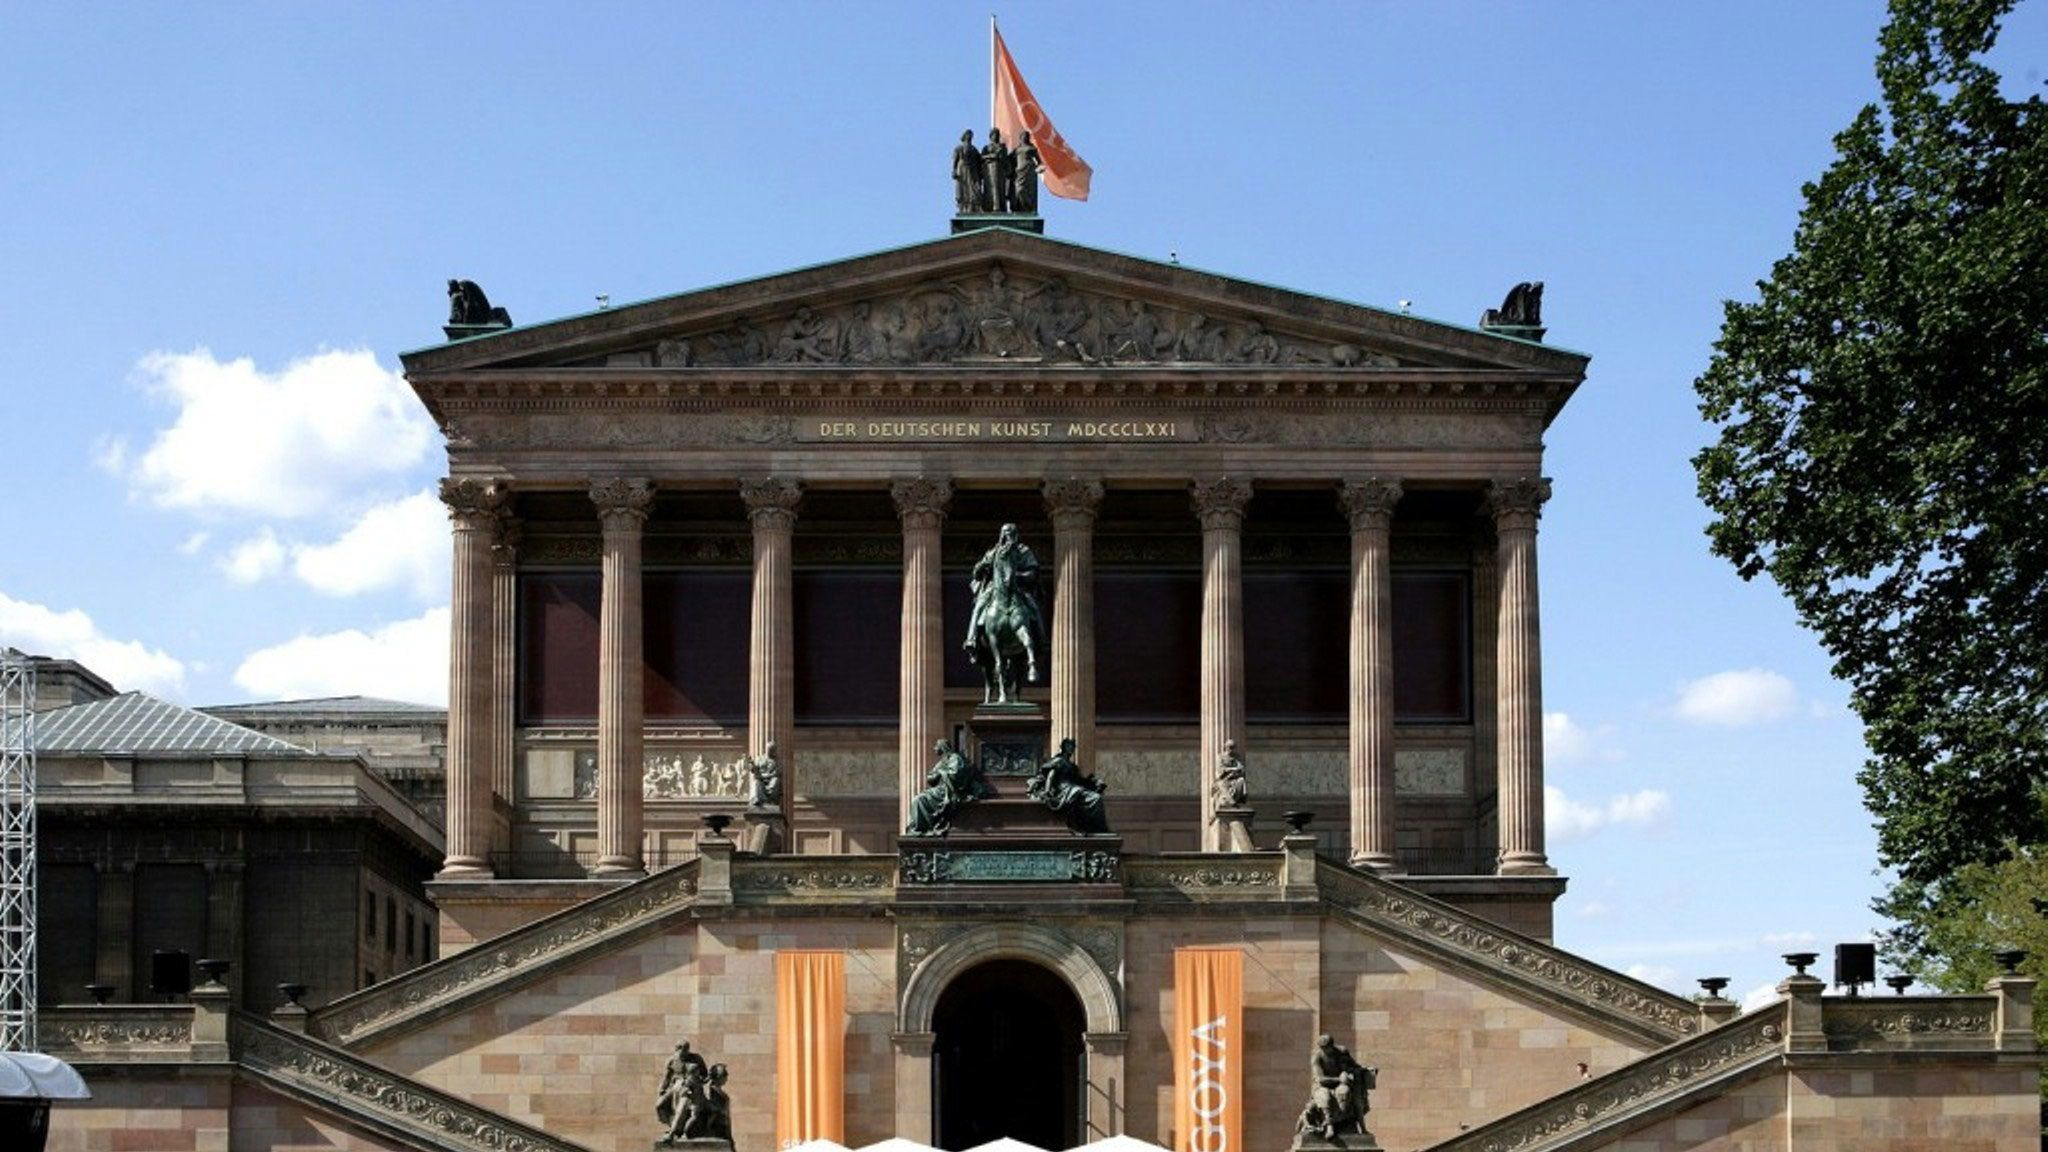 View of historical building in Berlin